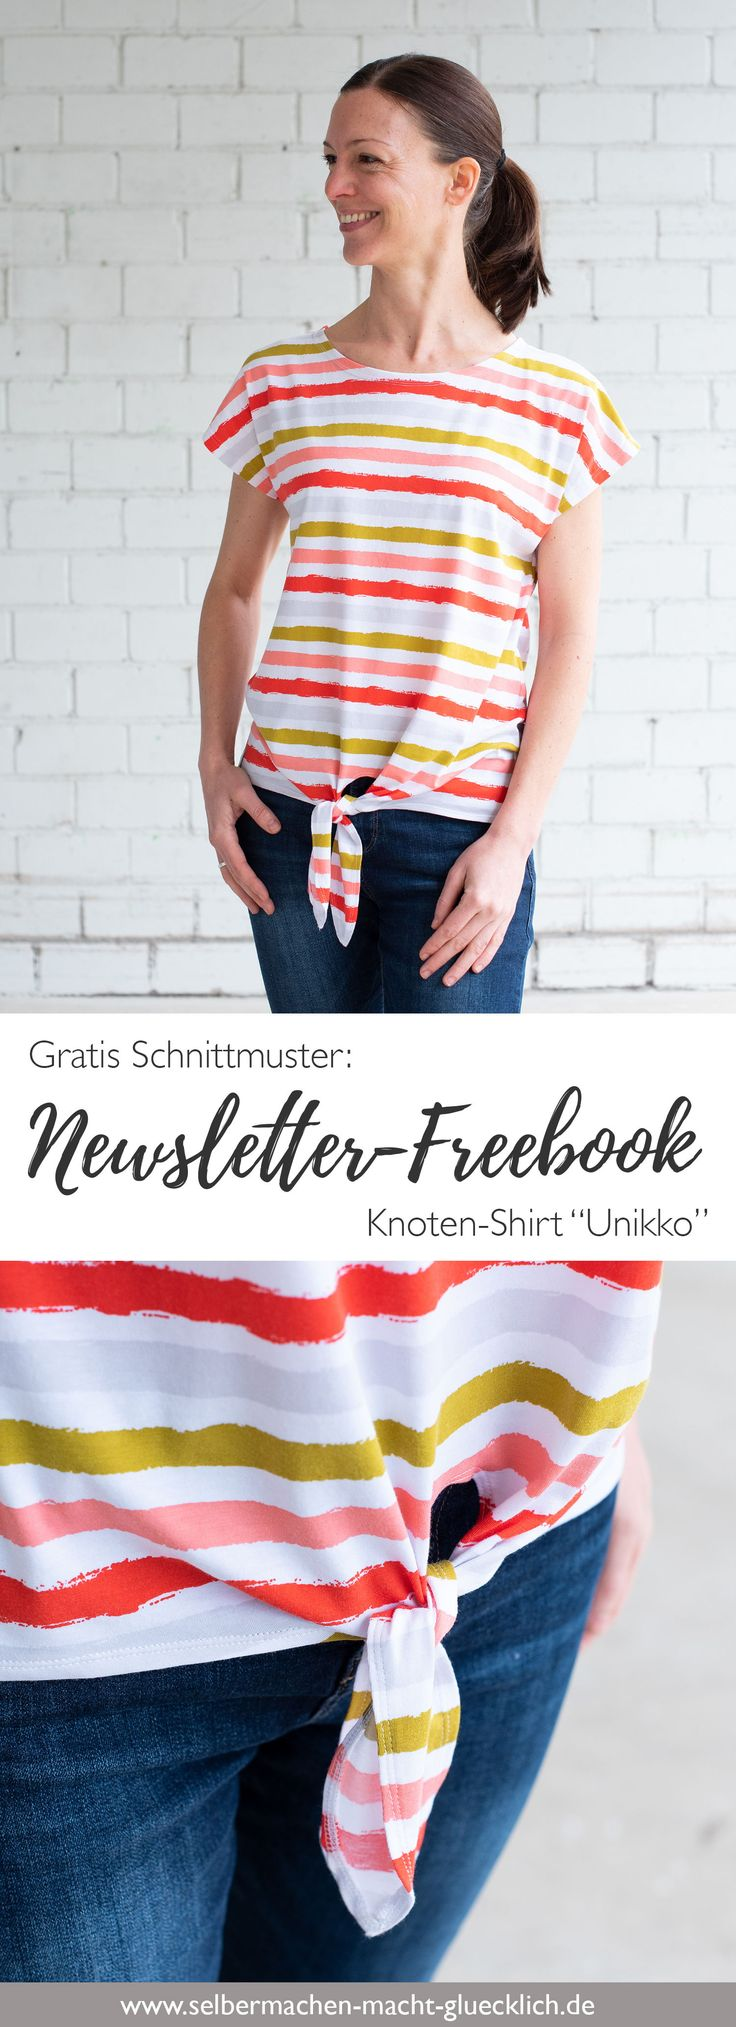 Gratis Schnittmuster: Exklusives Newsletter-Freebook Shirt Unikko von lillestoff… – fashiontamtam – Nähen, Schnittmuster, Nähtipps und Upcycling